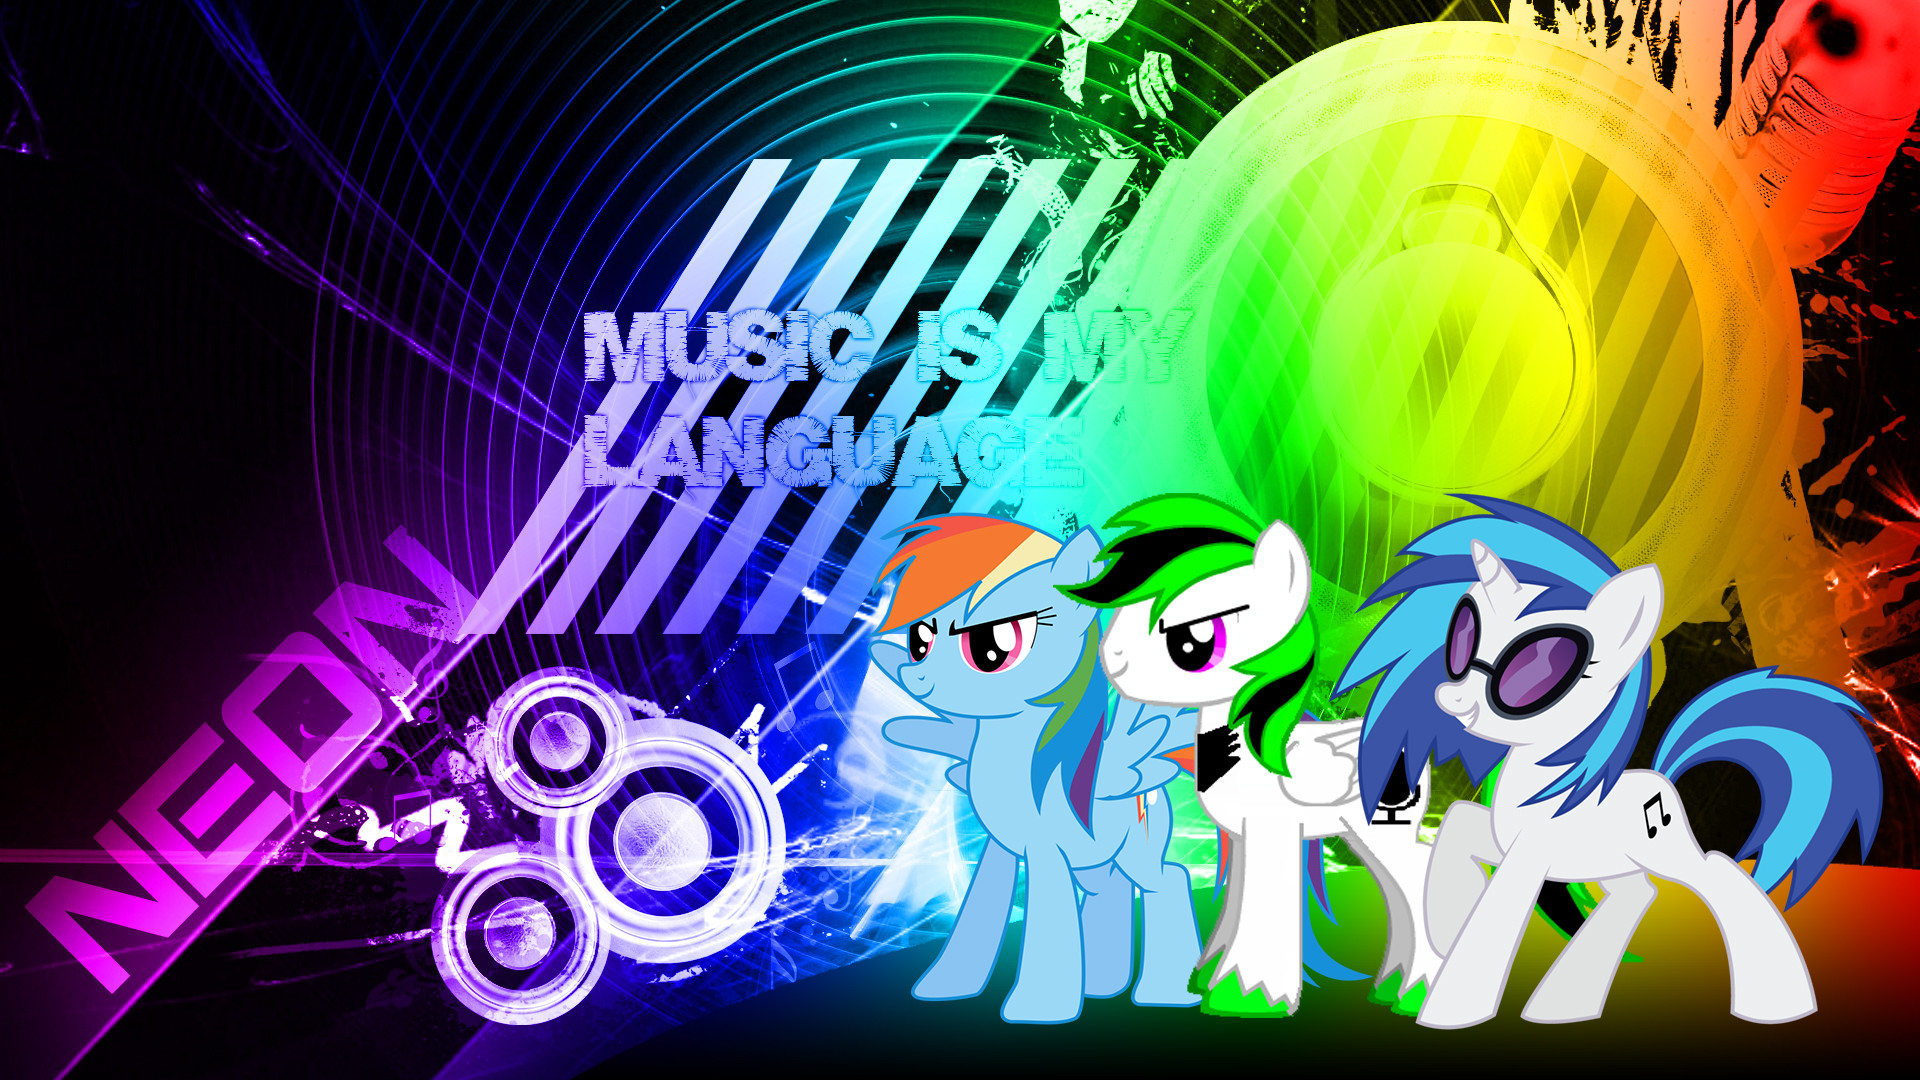 Res: 1920x1080, music wallpaper mlp